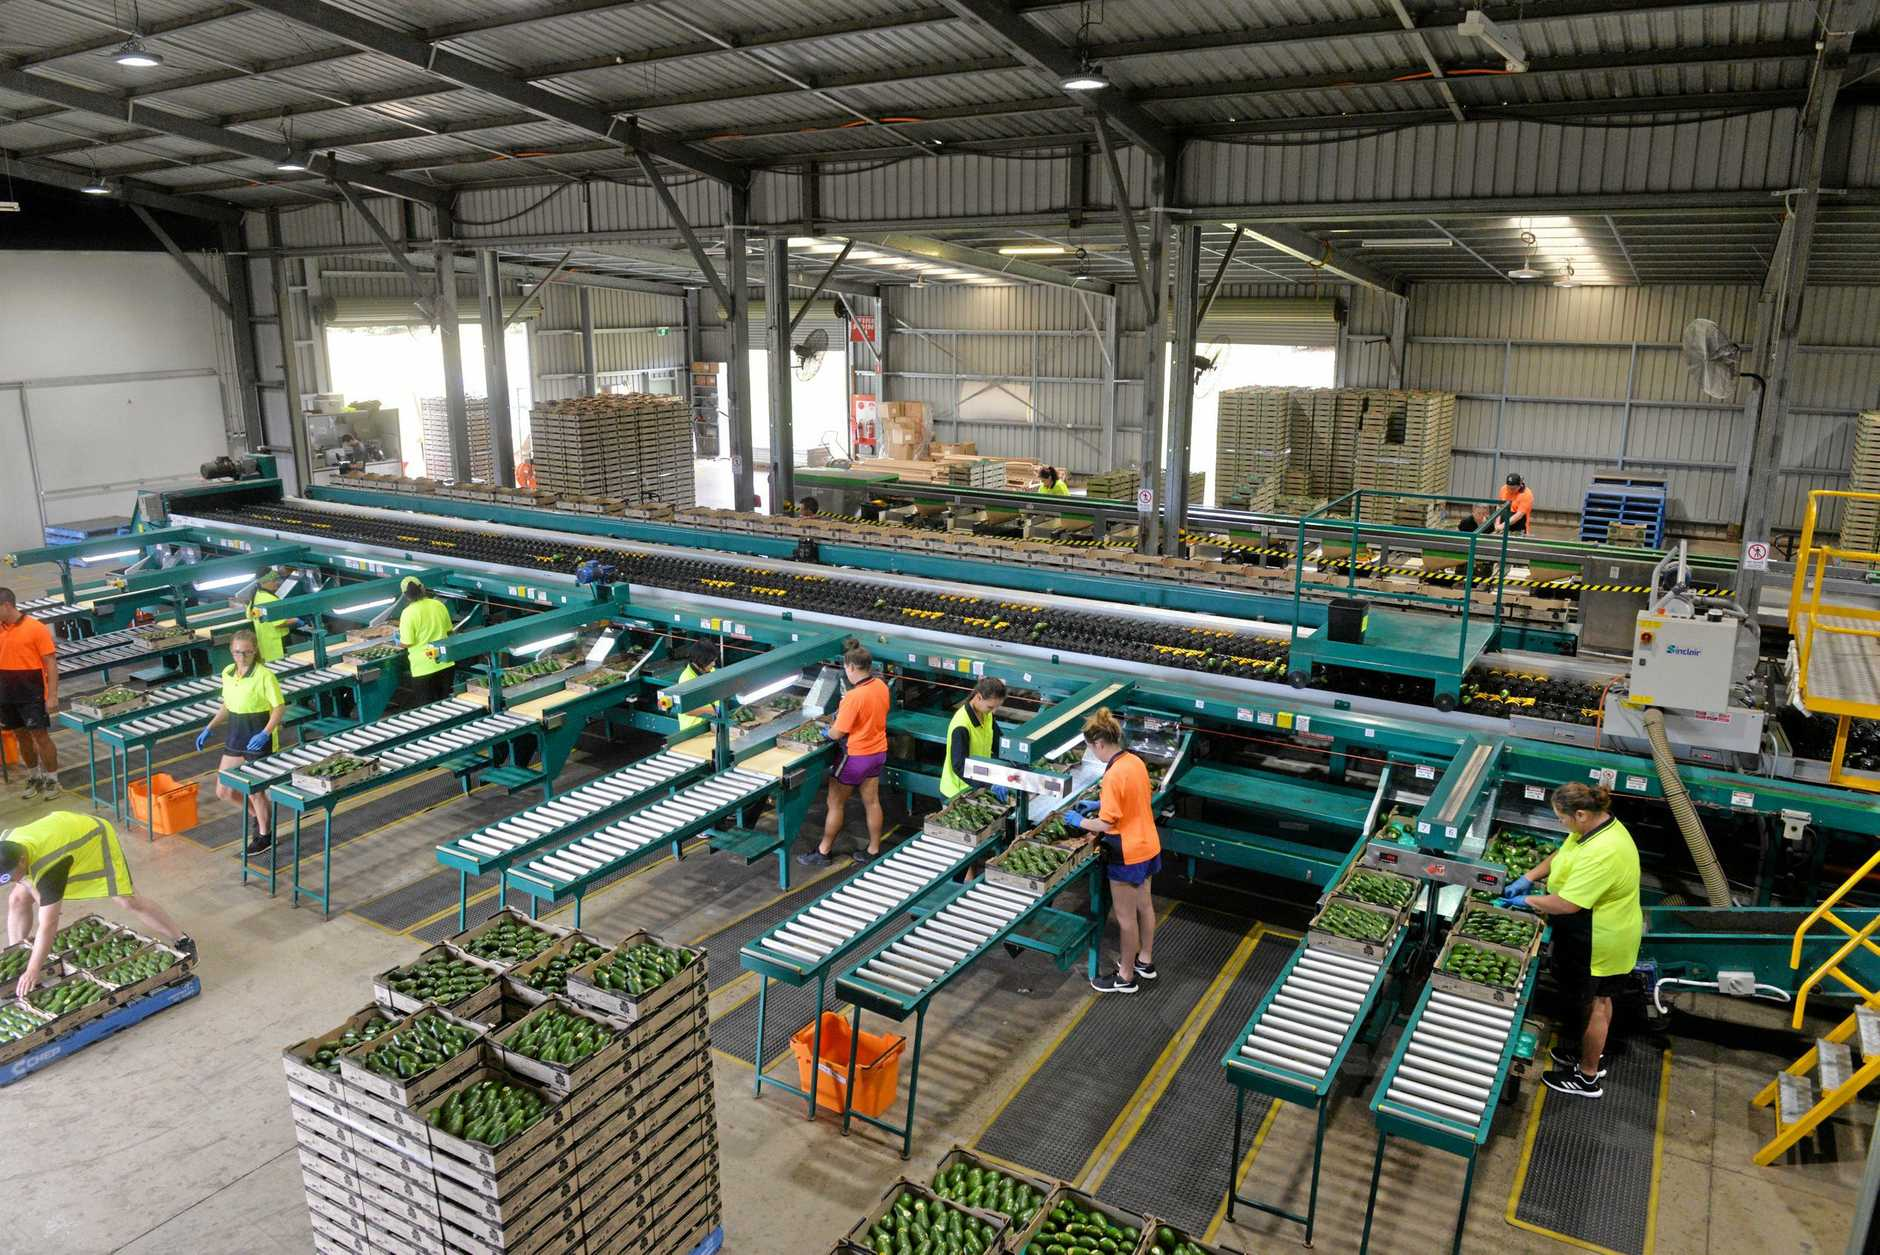 ALL SYSTEMS GO: Production line at Simpson Farms with the avocado harvest well underway.